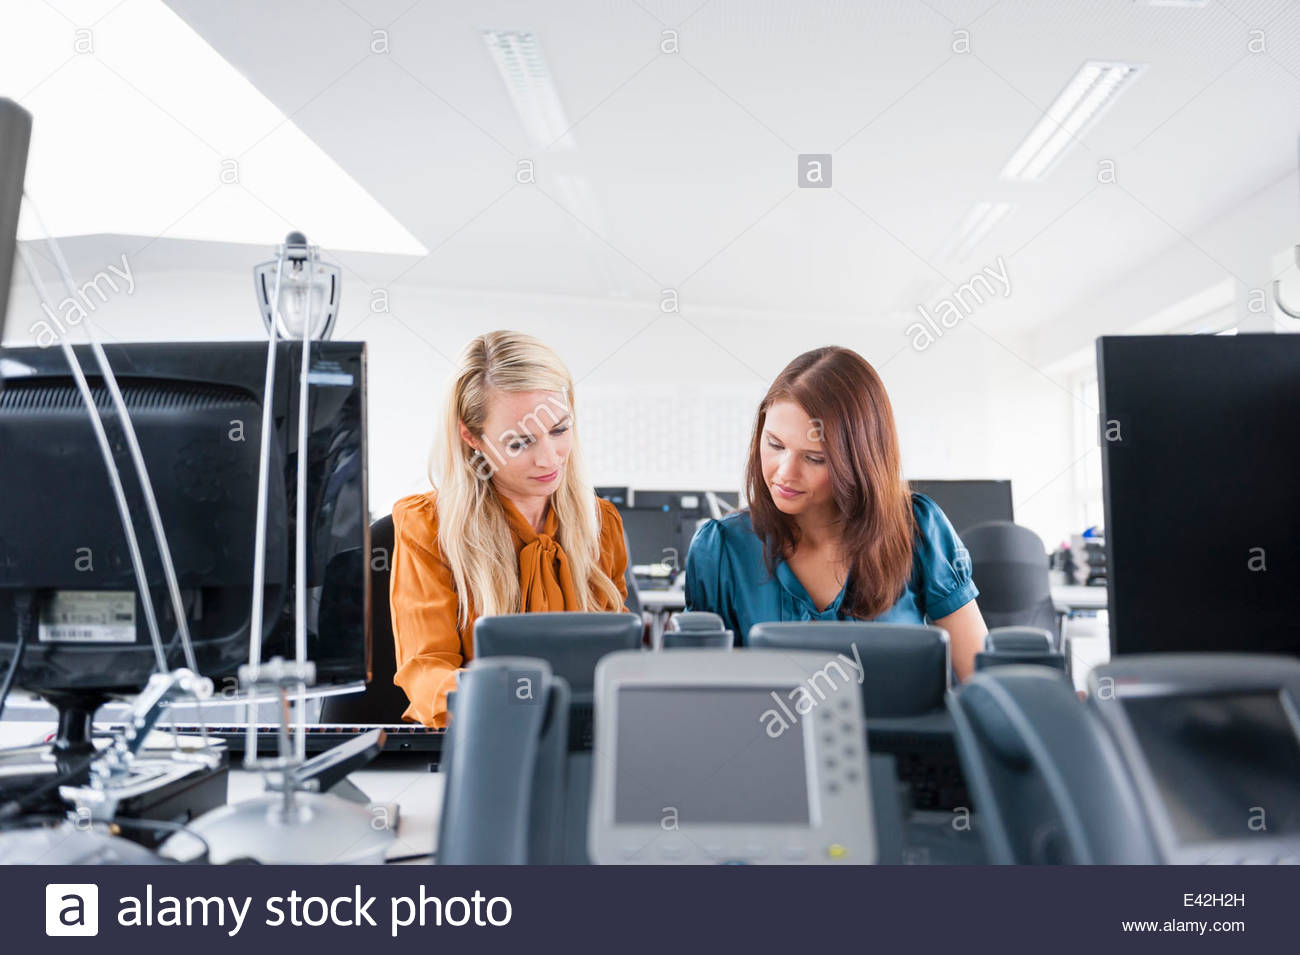 Office workers at desk - Stock Image